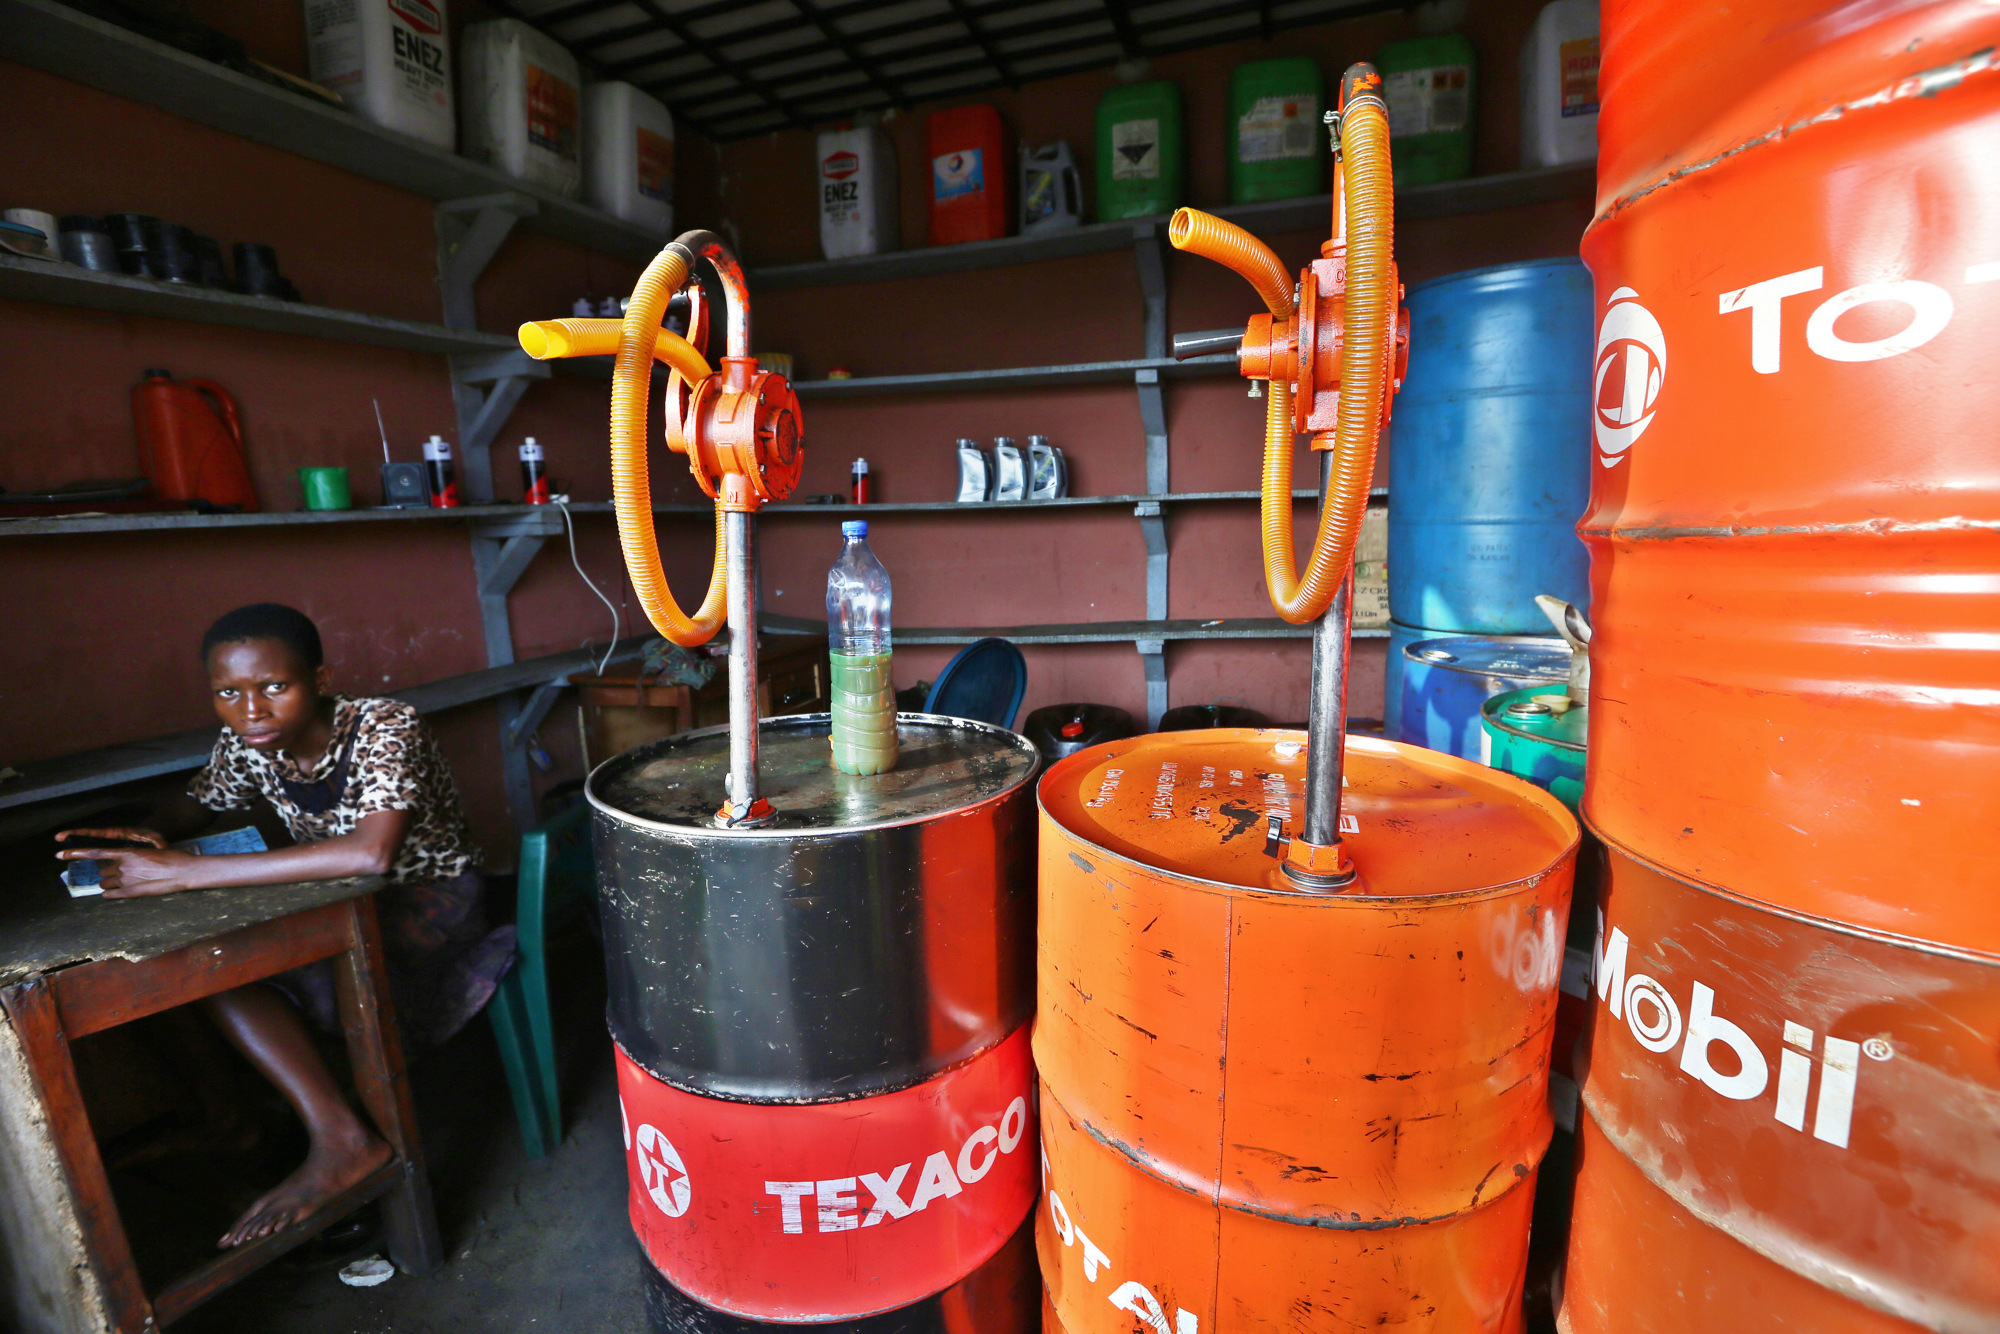 A street vendor waits for customers to buy his oil, delivered from old oil drums belonging to Texaco Inc., Exxon Mobile Corp, and Total SA, from a roadside store in Port Harcourt, Nigeria, on Wednesday, Jan. 13, 2016.  Photographer: George Osodi/Bloomberg